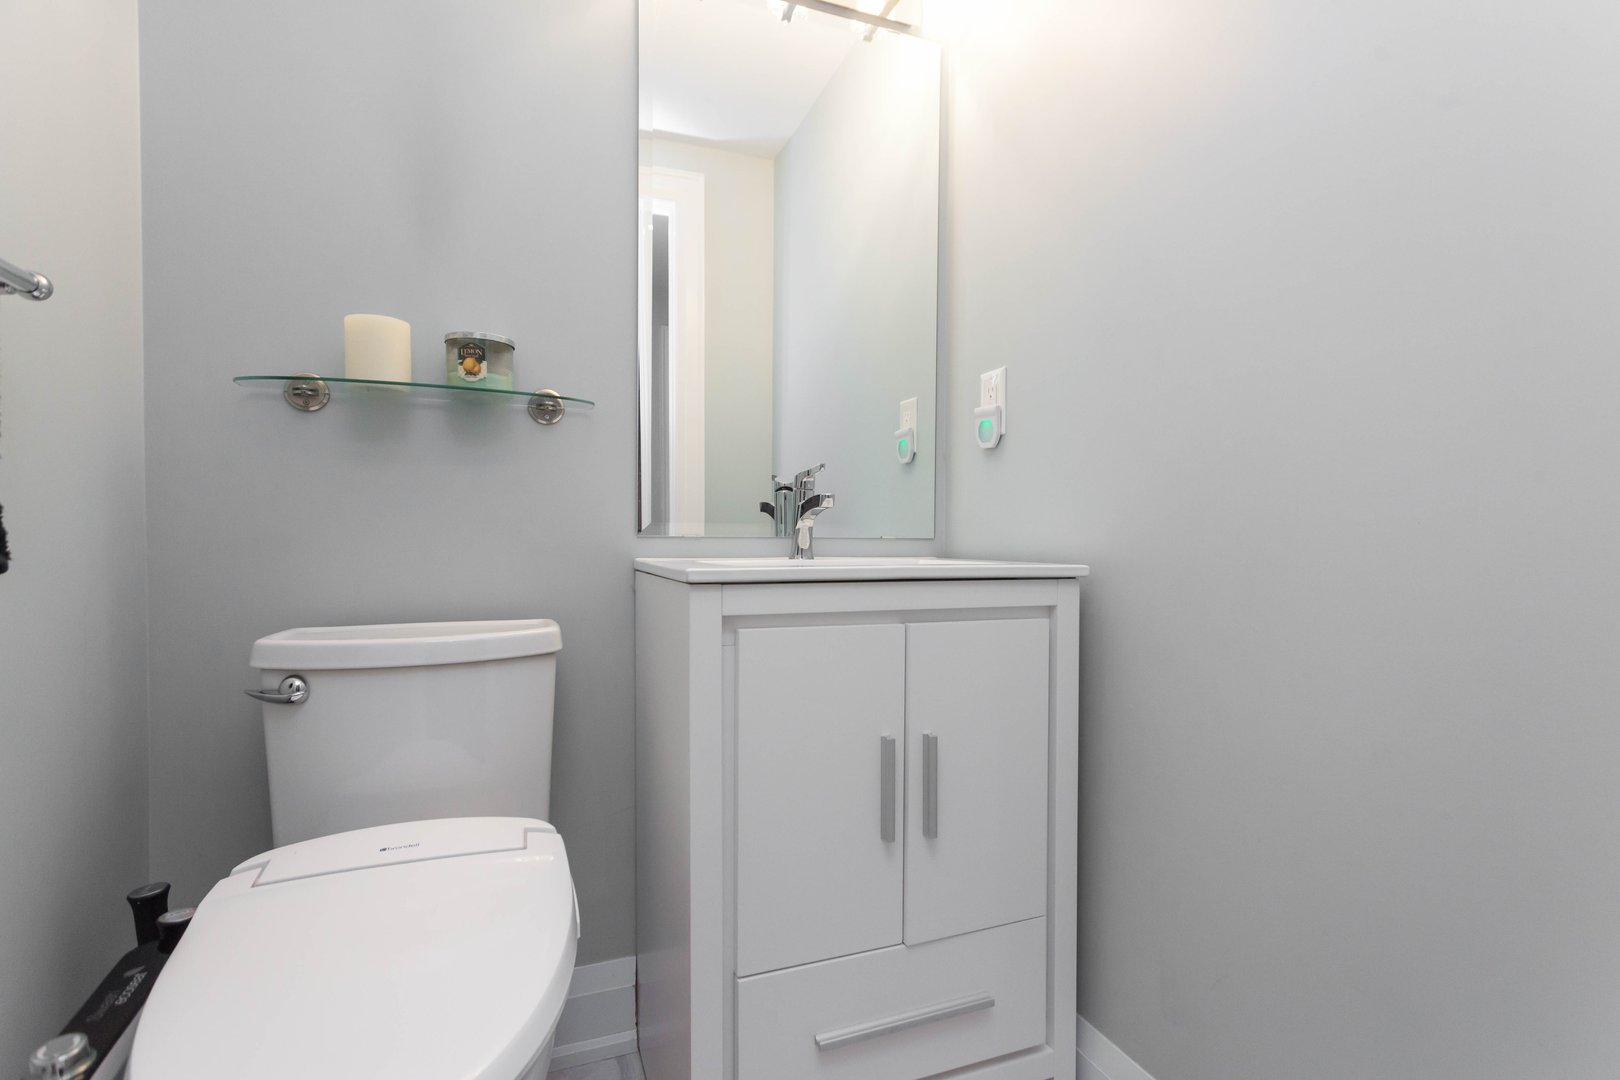 House for rent at 84 Laurel Avenue, Etobicoke, ON. This is the bathroom.